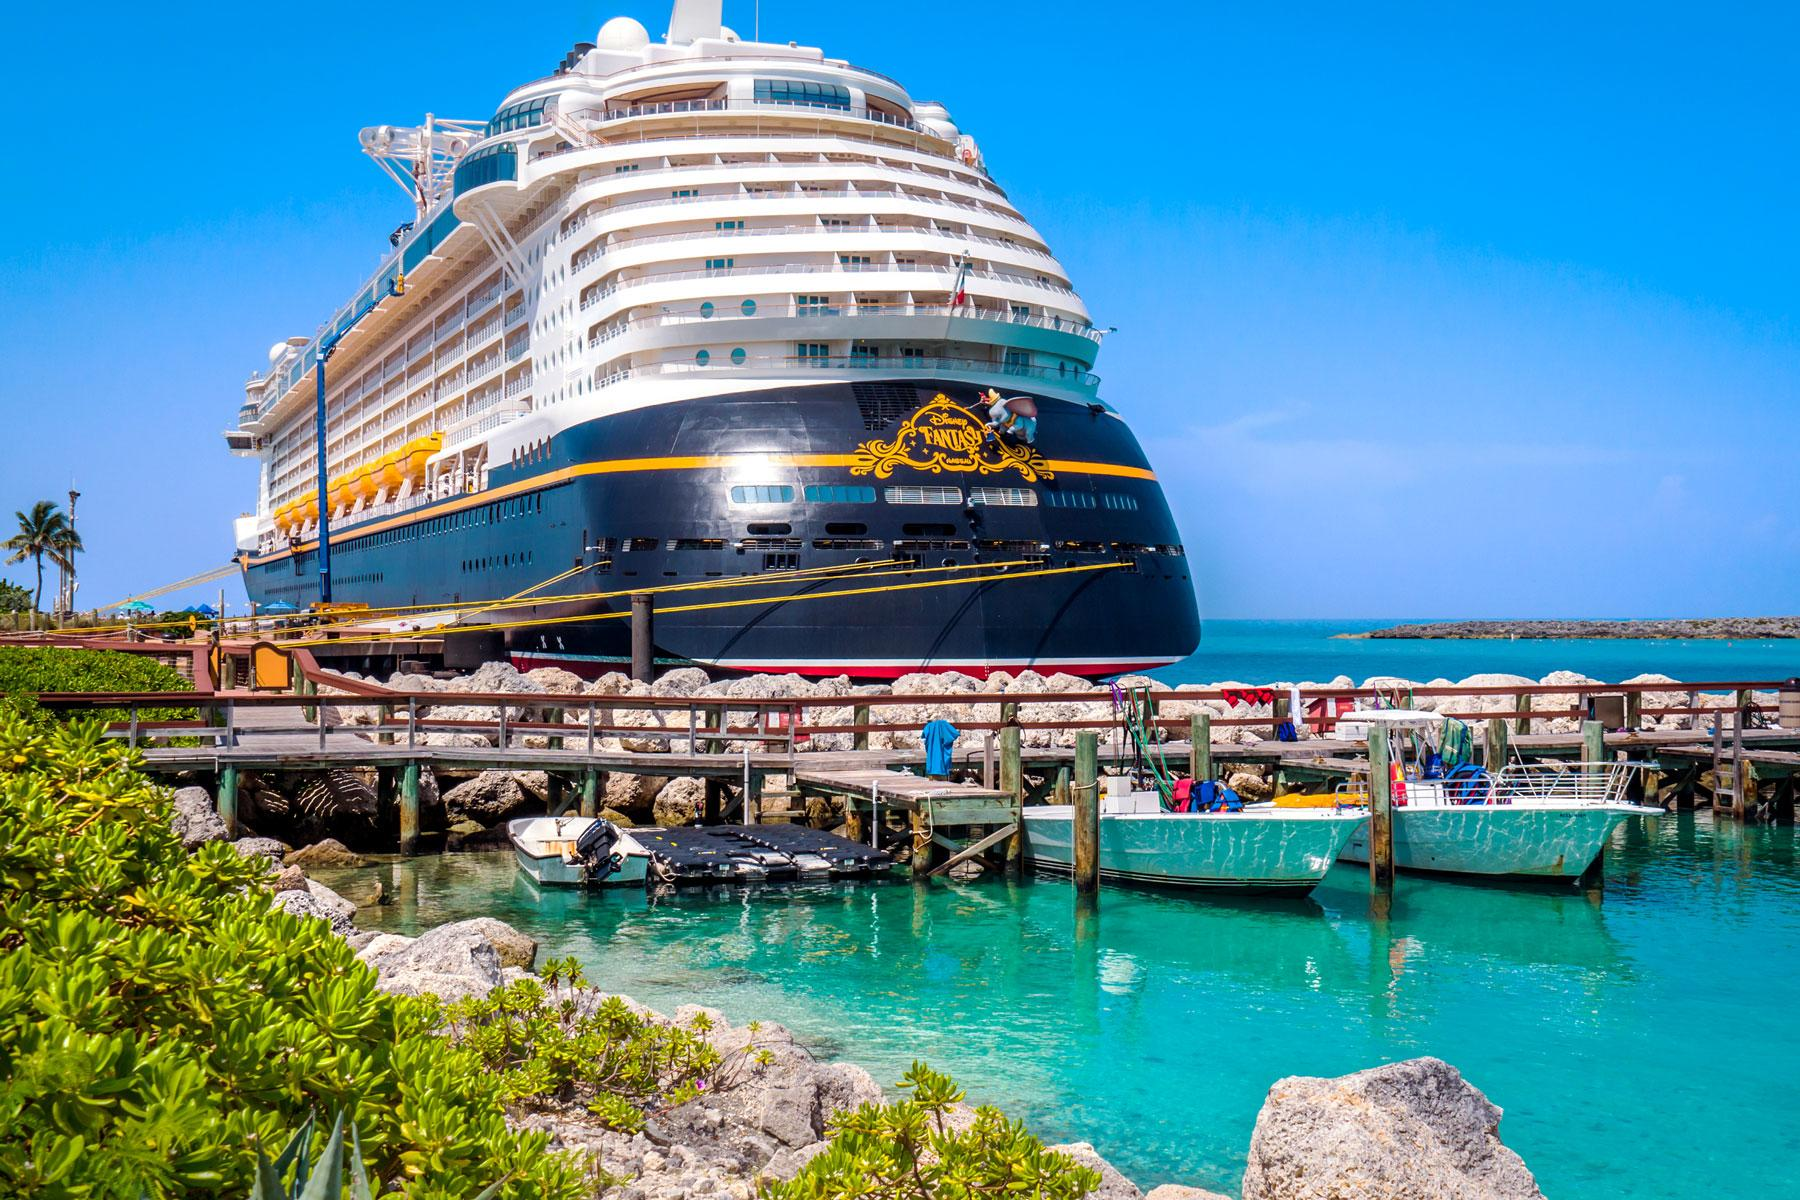 A Disney S Cruise To Castaway Cay